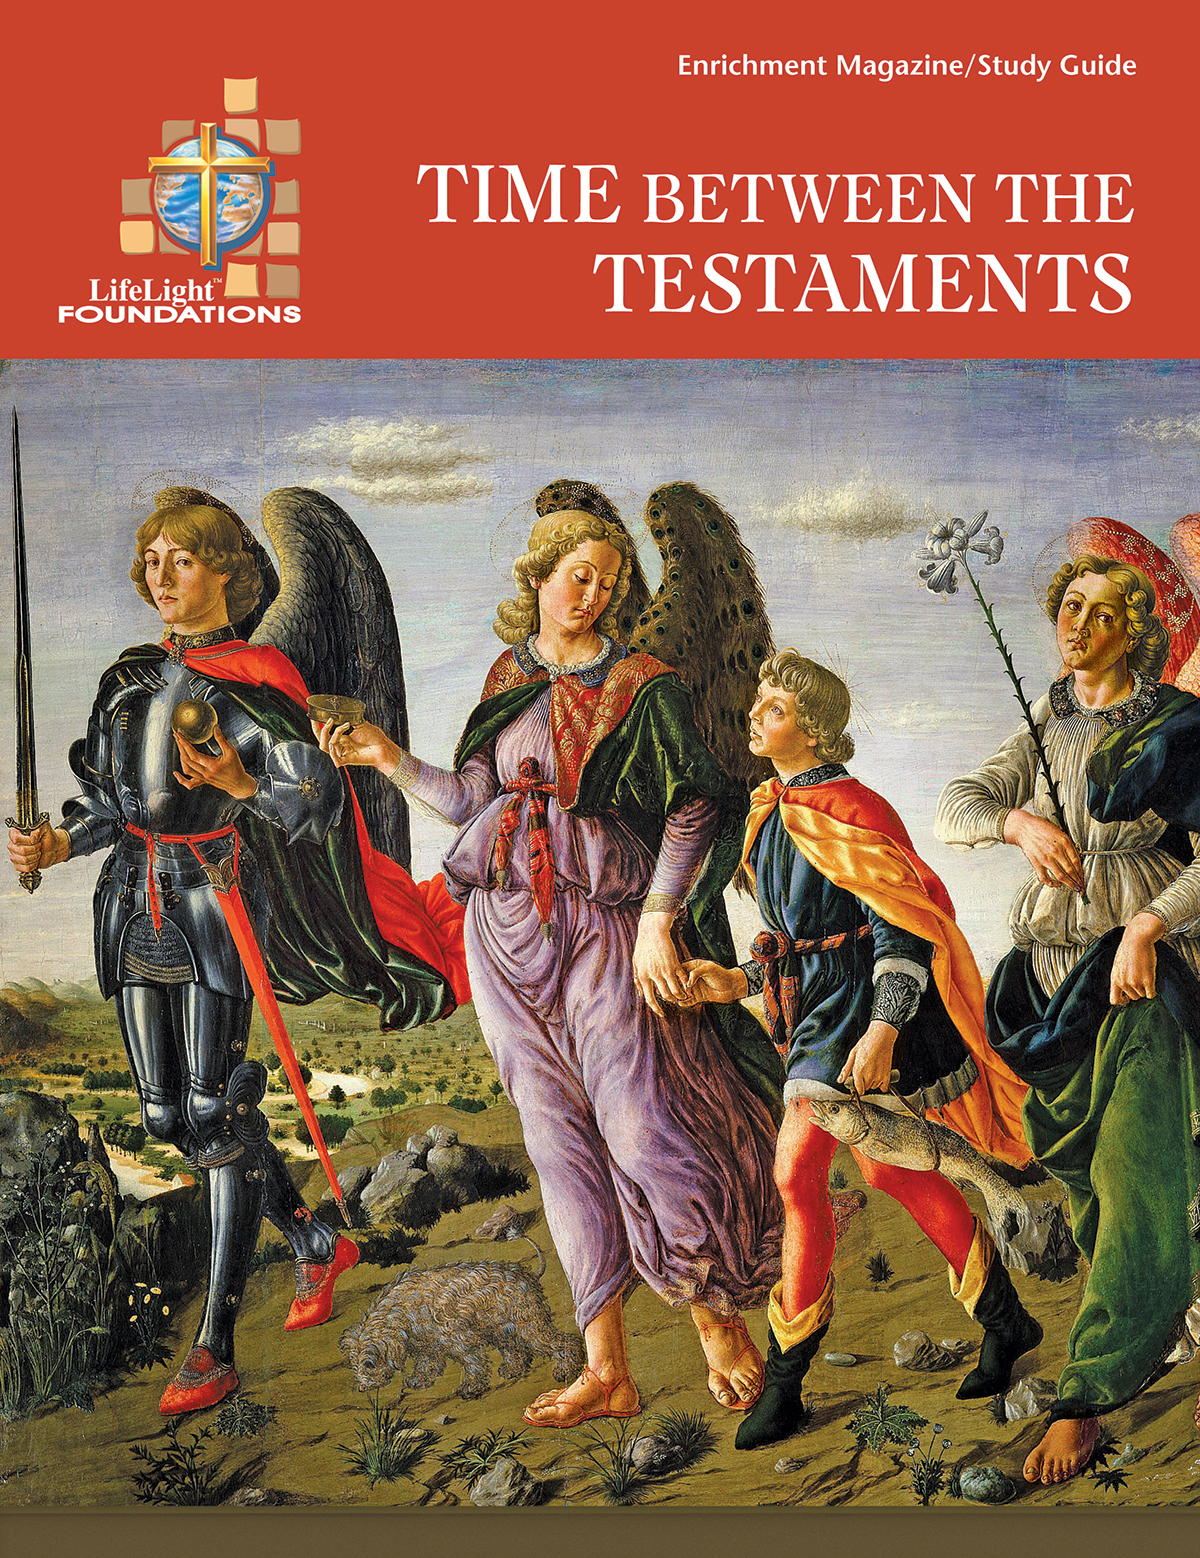 The 400 Years between the Old and New Testaments